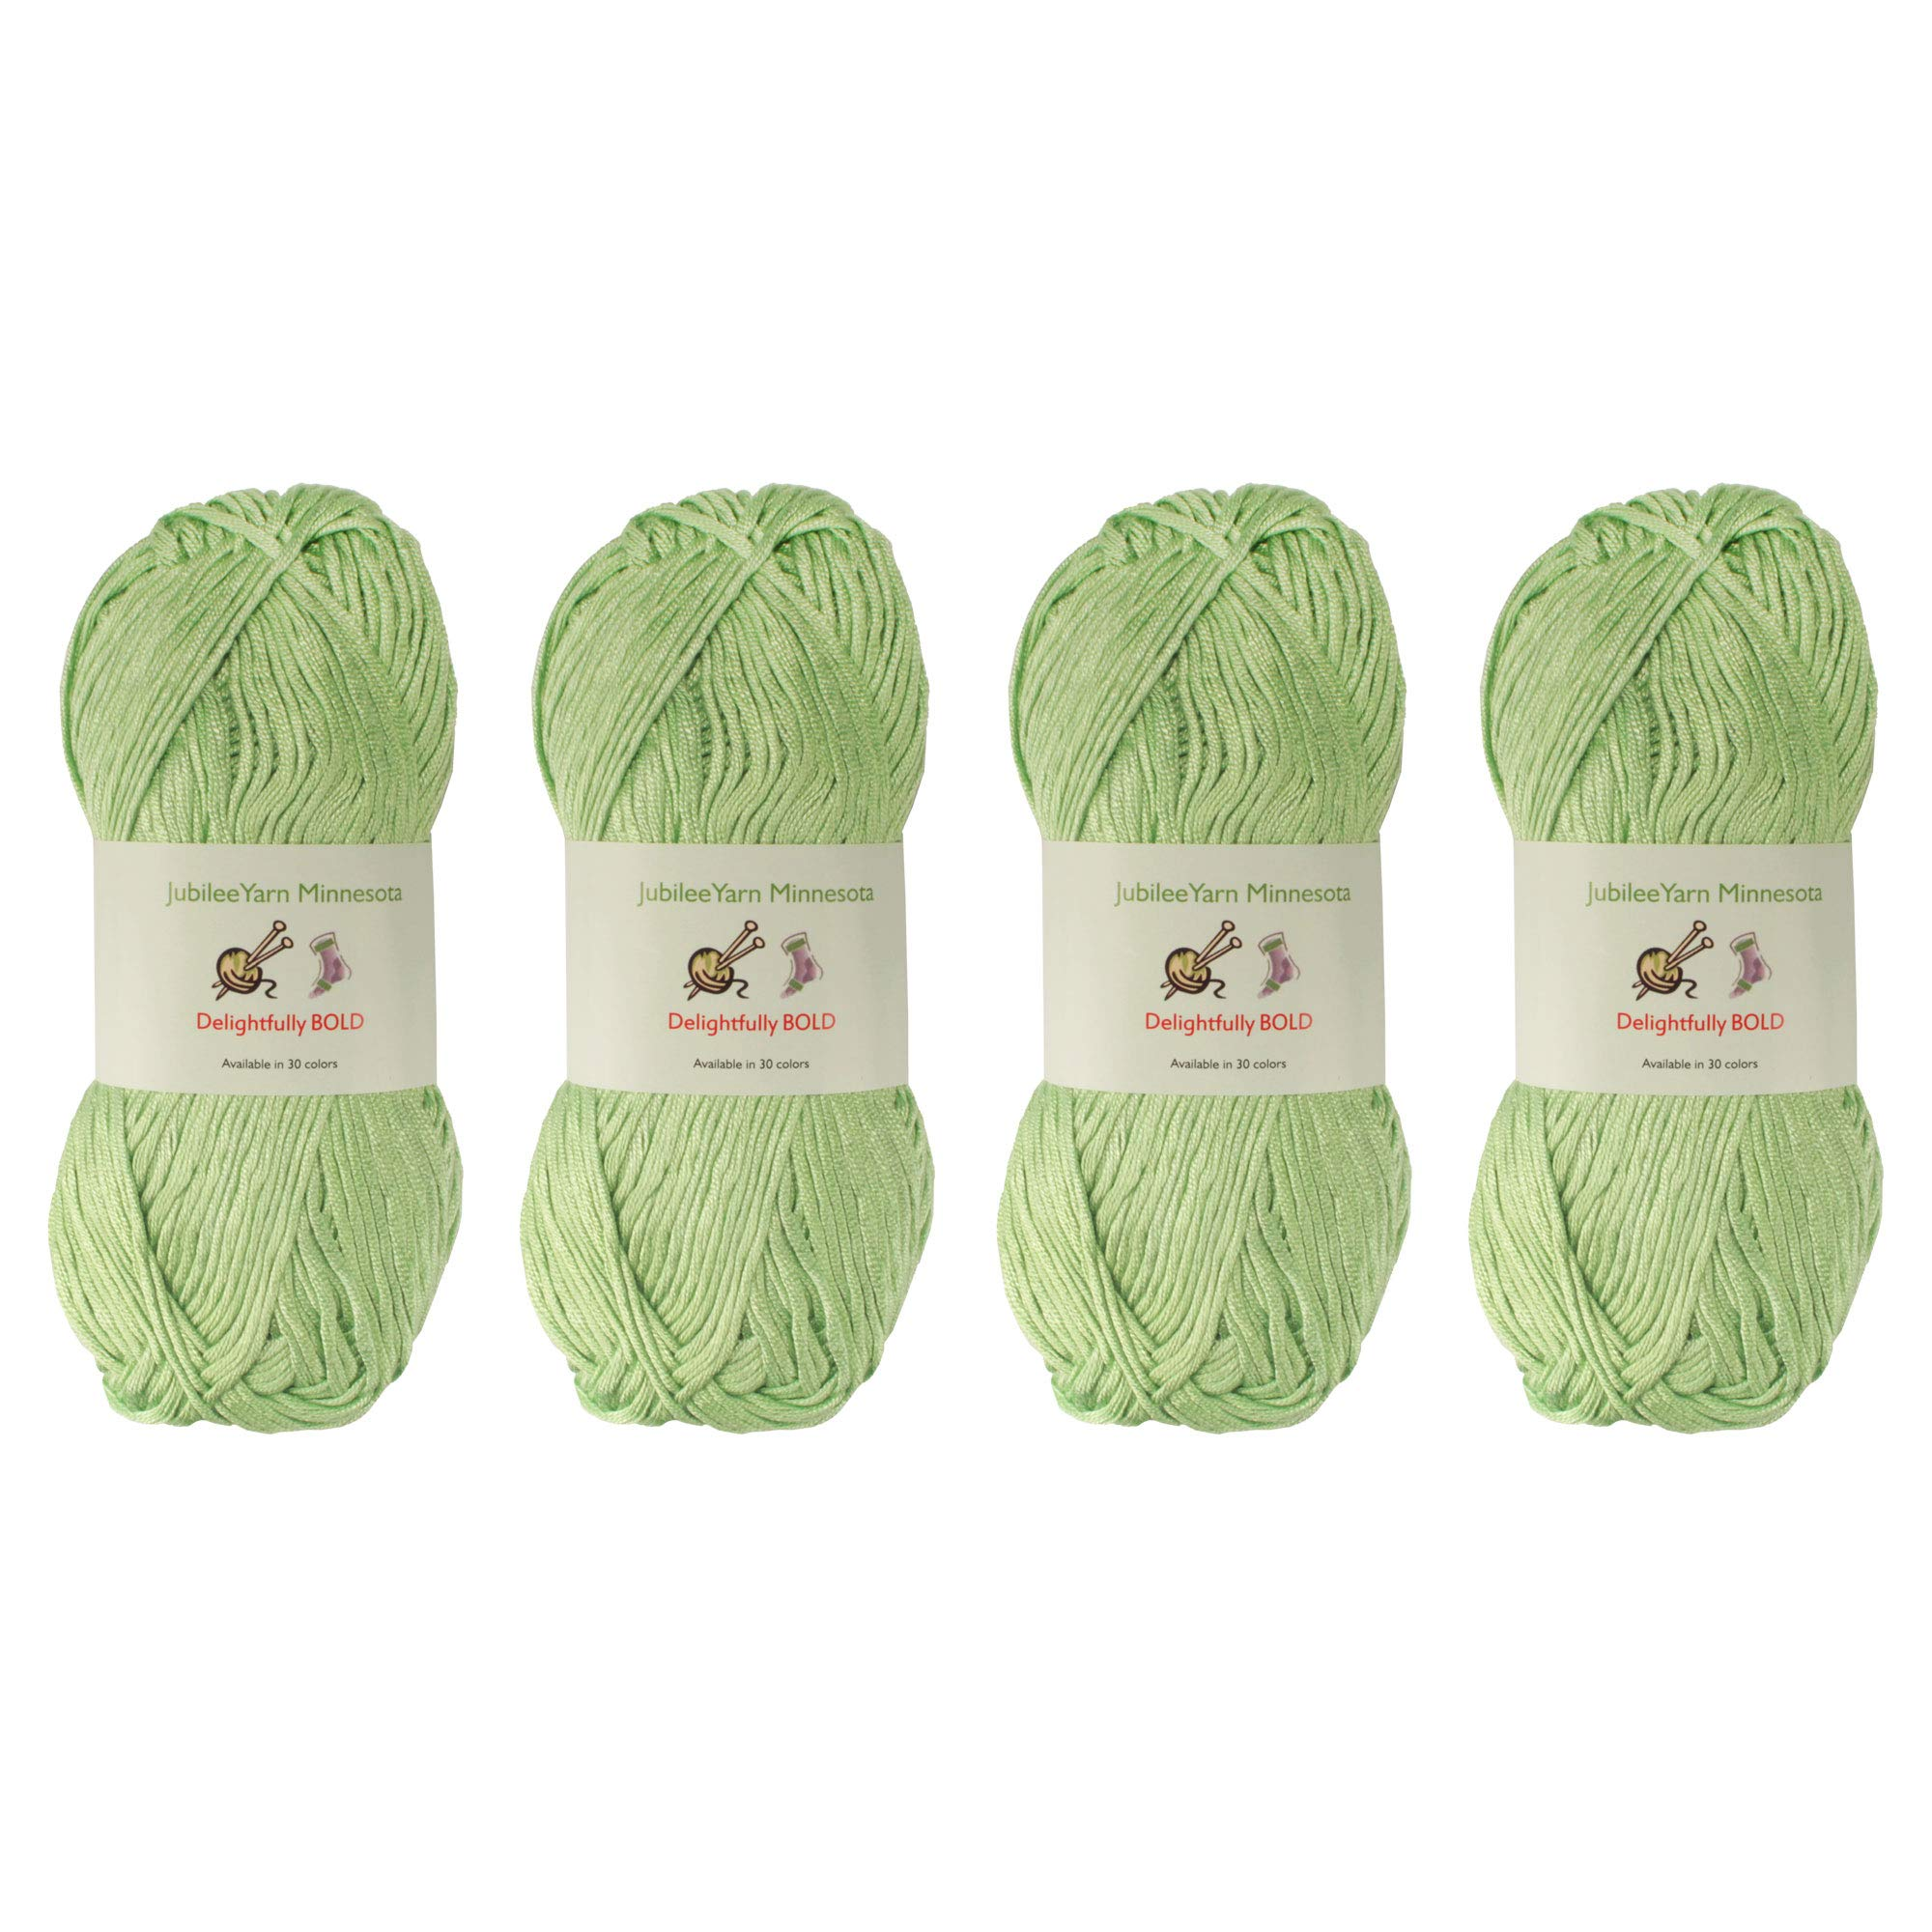 Delightfully Bold Tencel Worsted Weight Yarn, 100g Per Skein, 4 Skeins Color 06 Green Hill